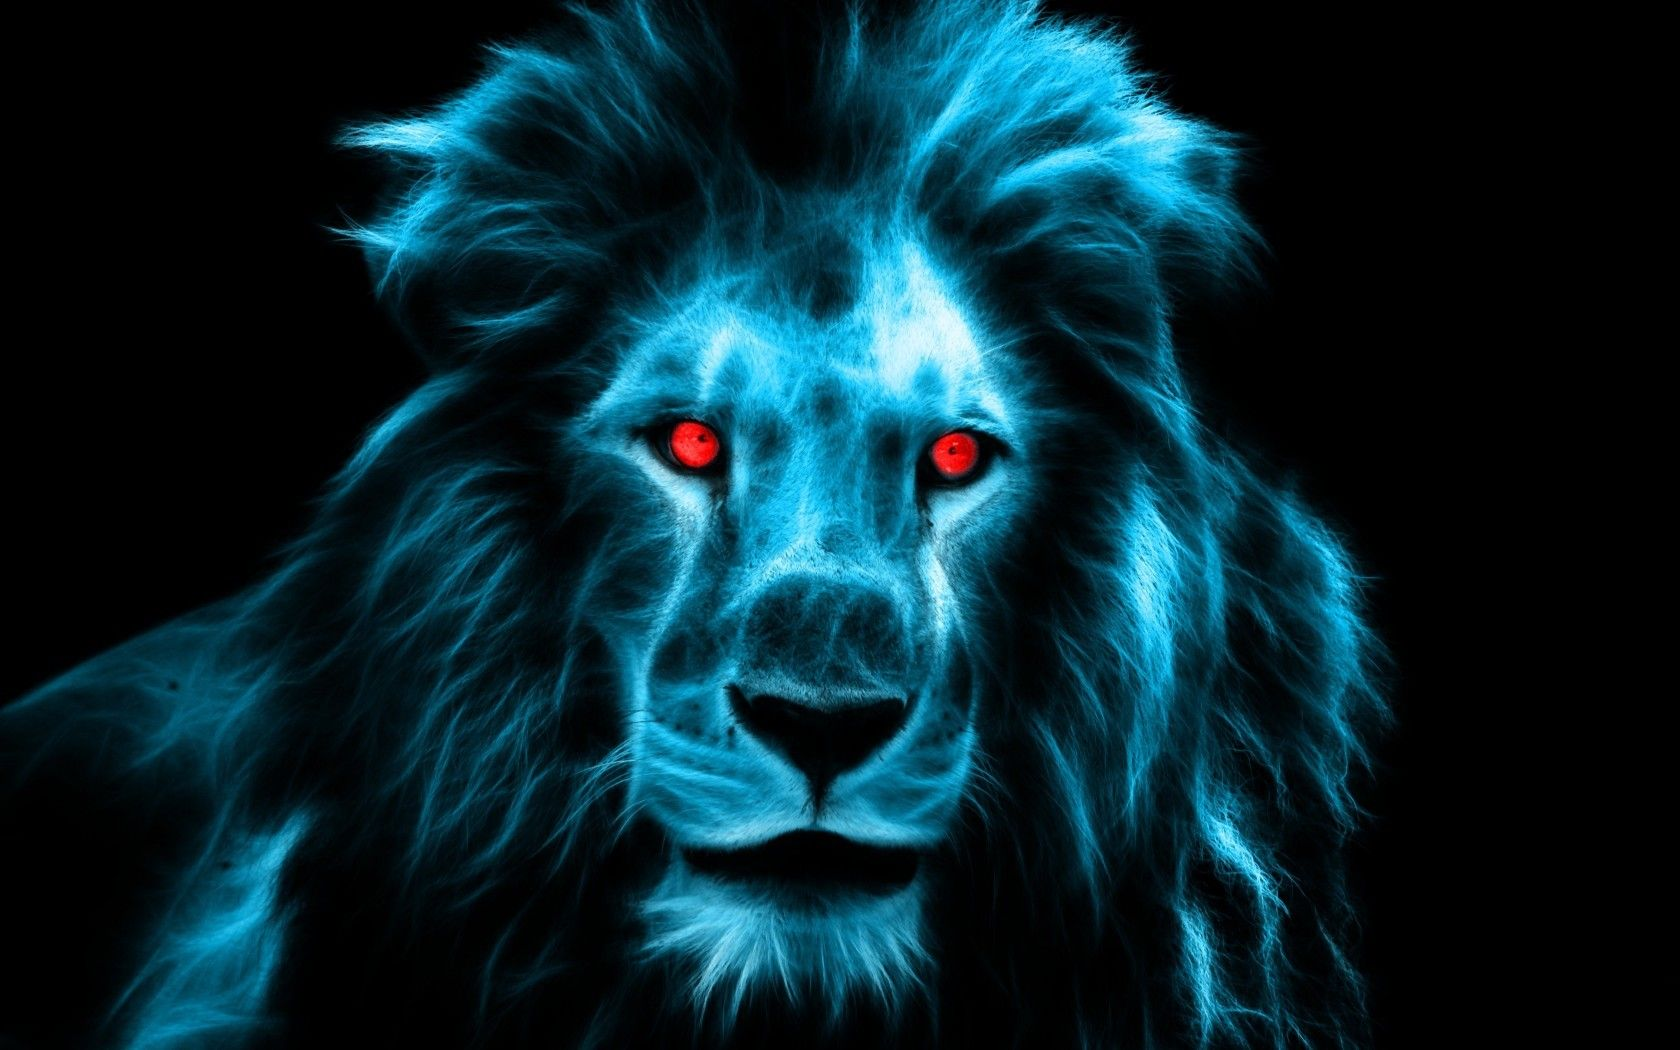 Blue Lion Wallpapers - Top Free Blue Lion Backgrounds ...